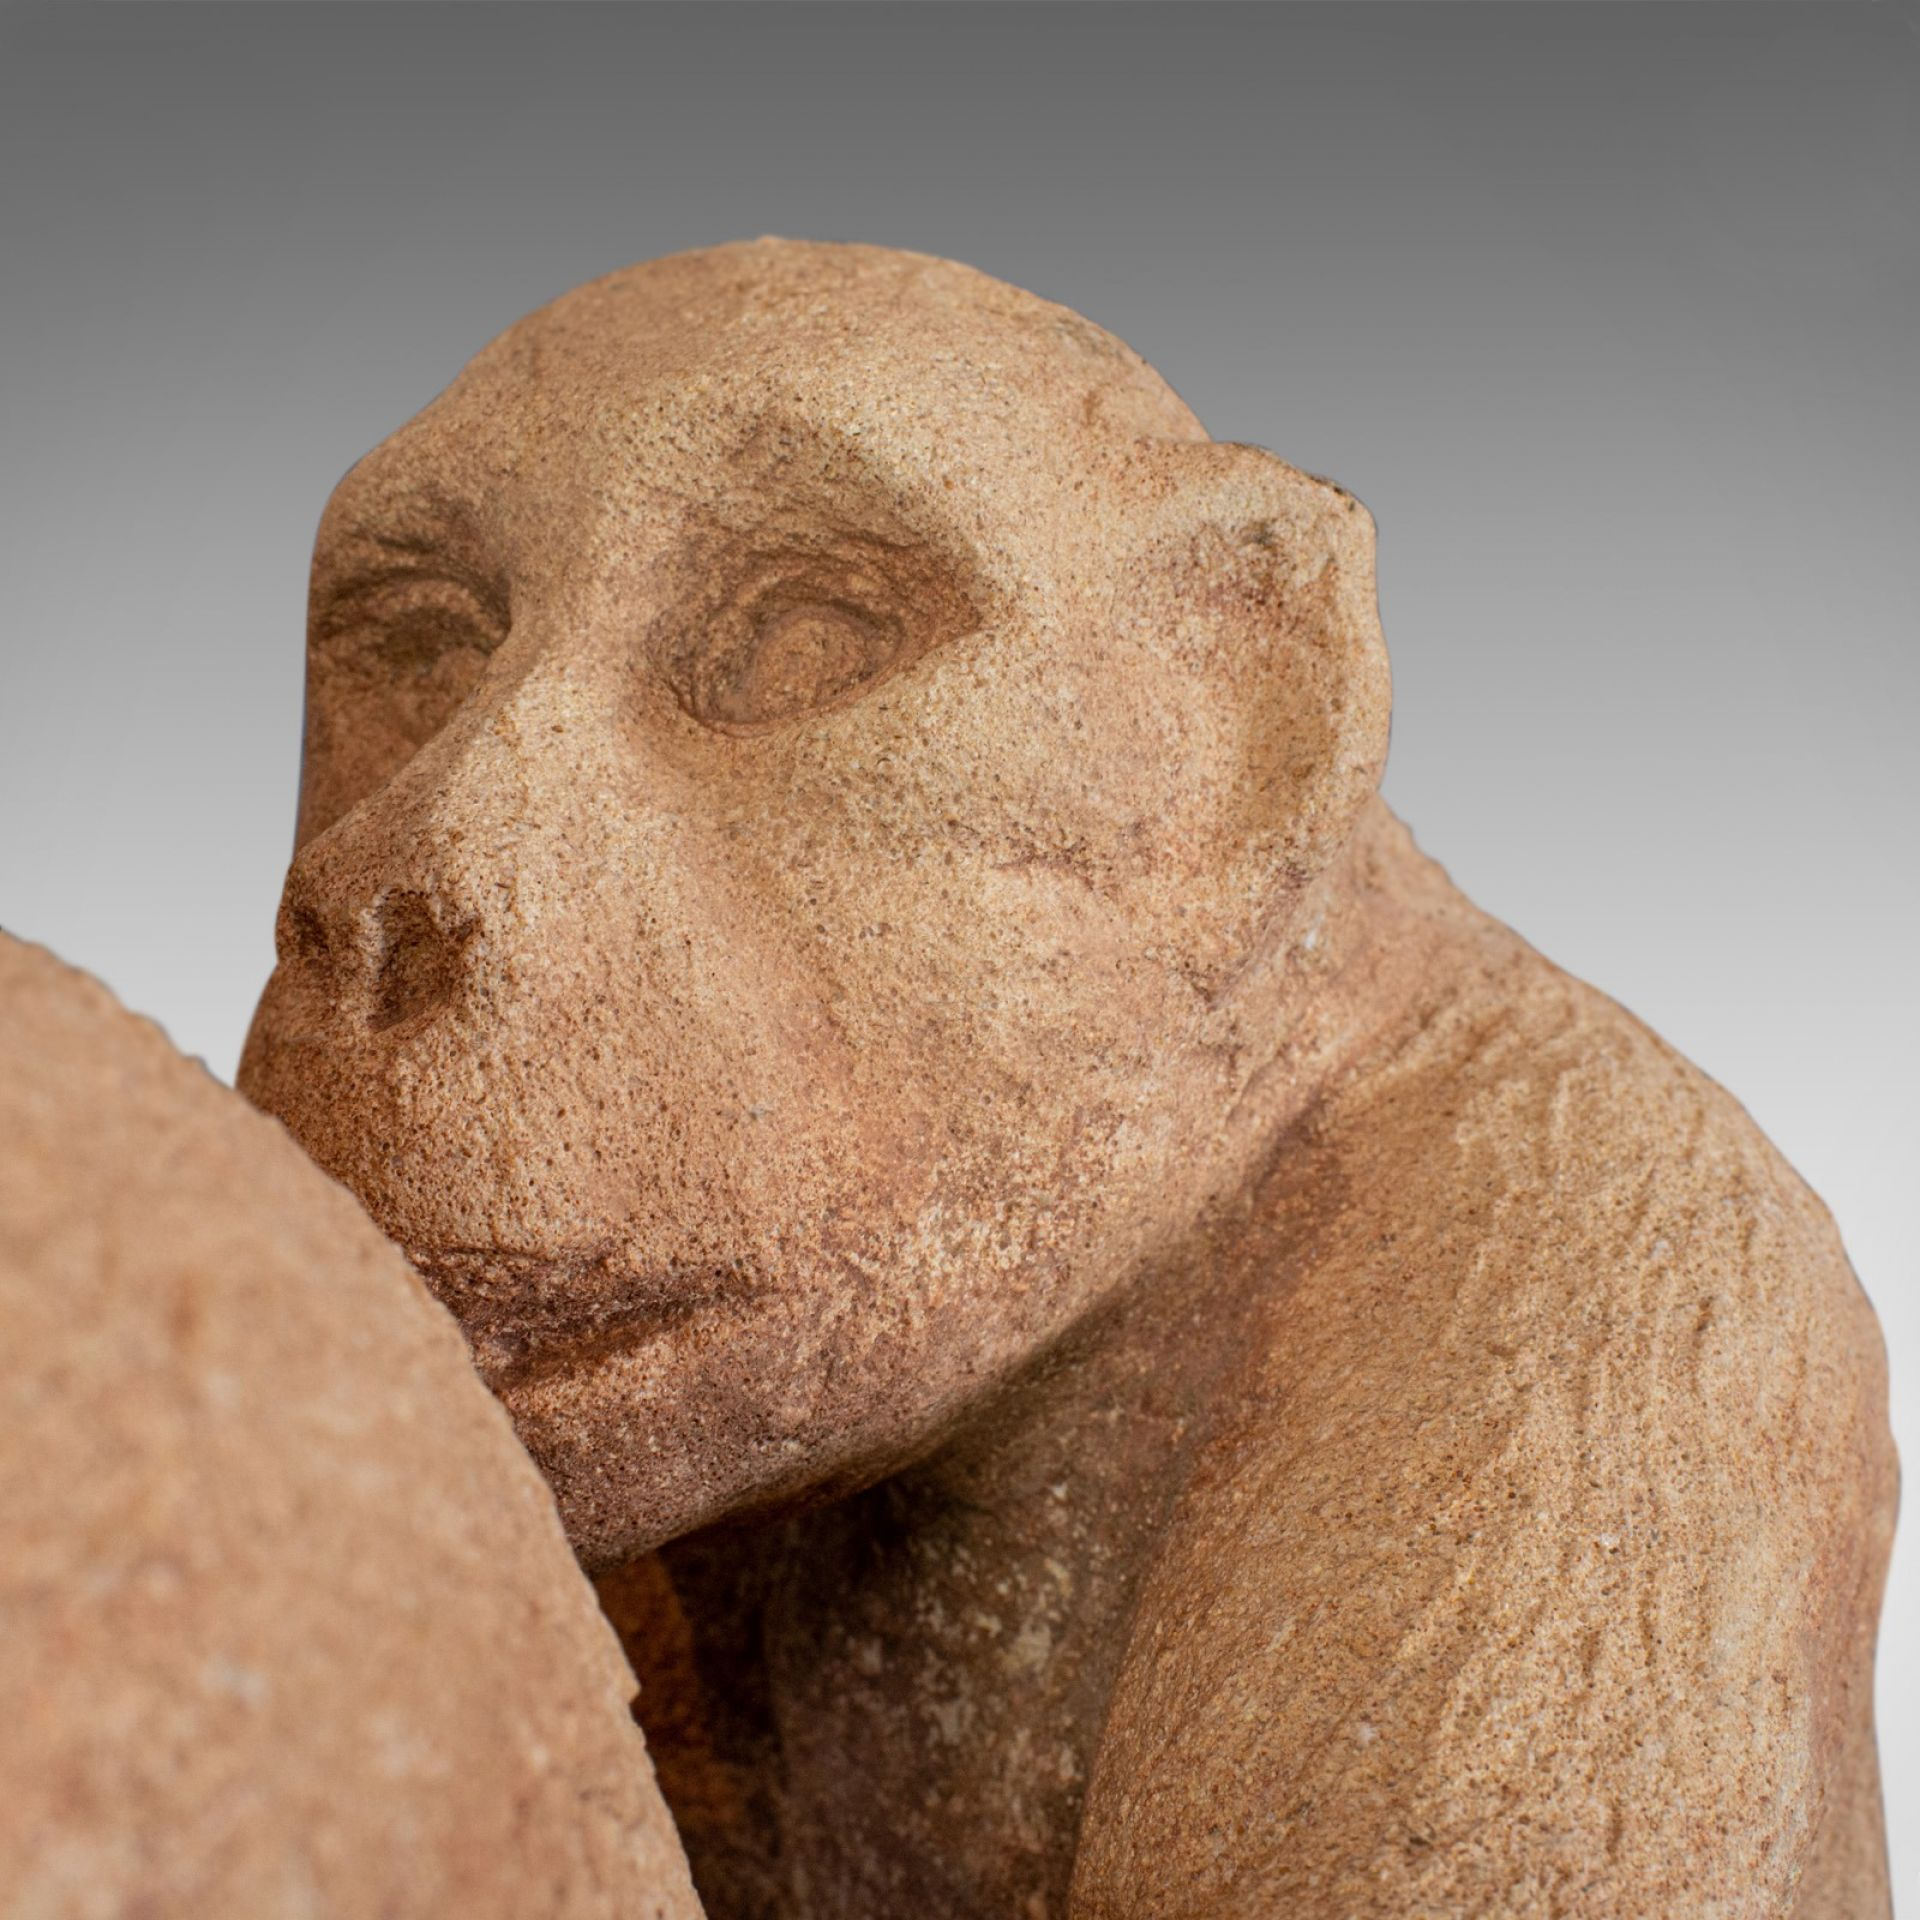 Sculpture of Sitting Macaques, English, Bath Stone, Dominic Hurley